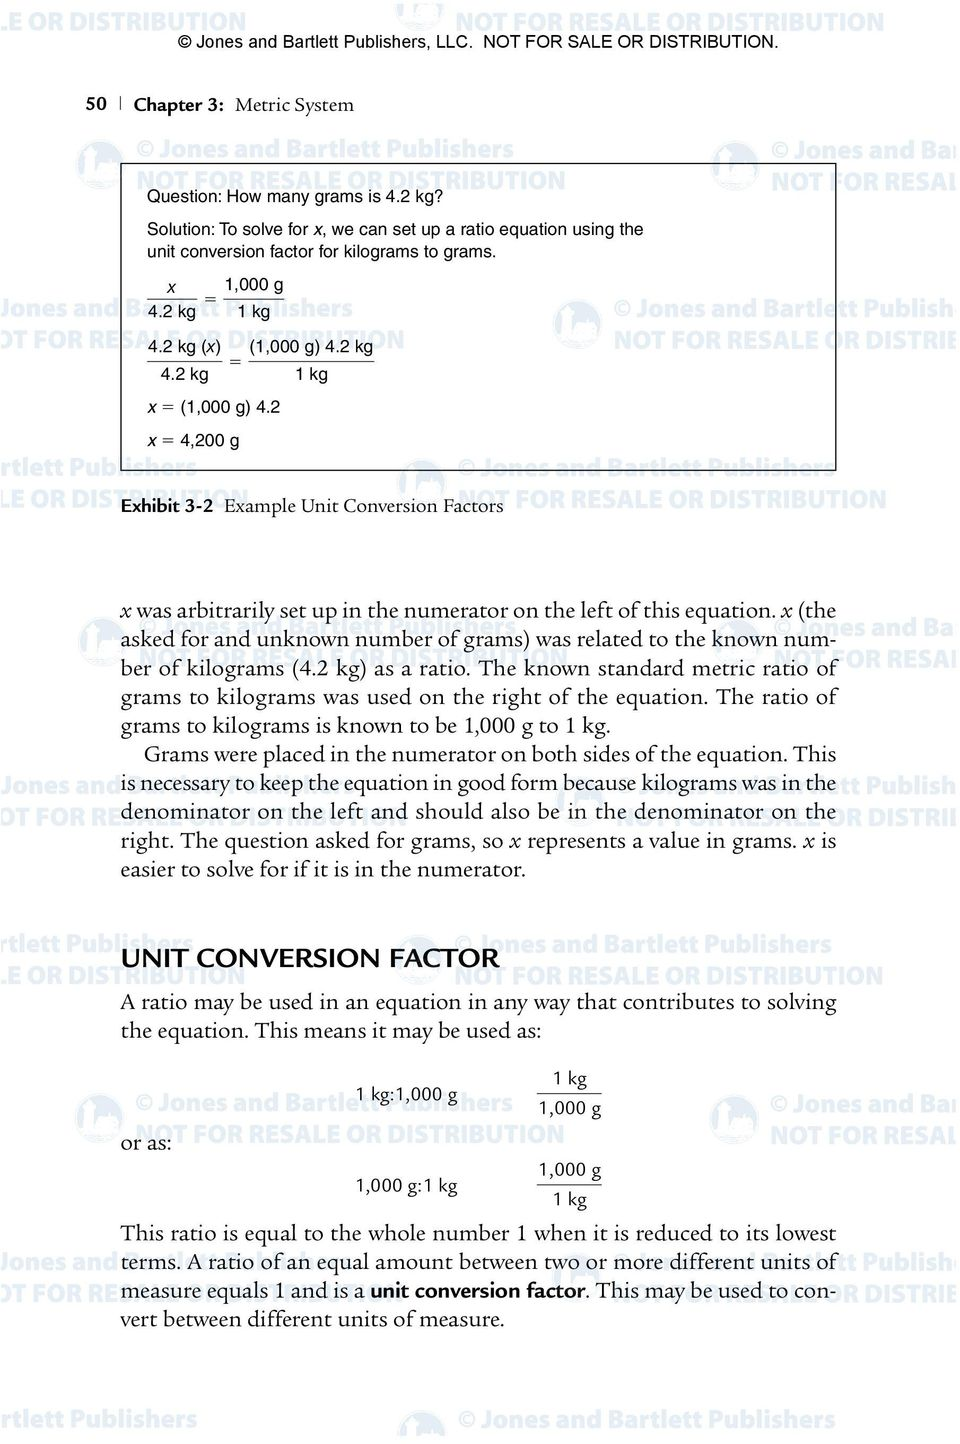 2 x 4,200 g Exhibit 3-2 Example Unit Conversion Factors x was arbitrarily set up in the numerator on the left of this equation.